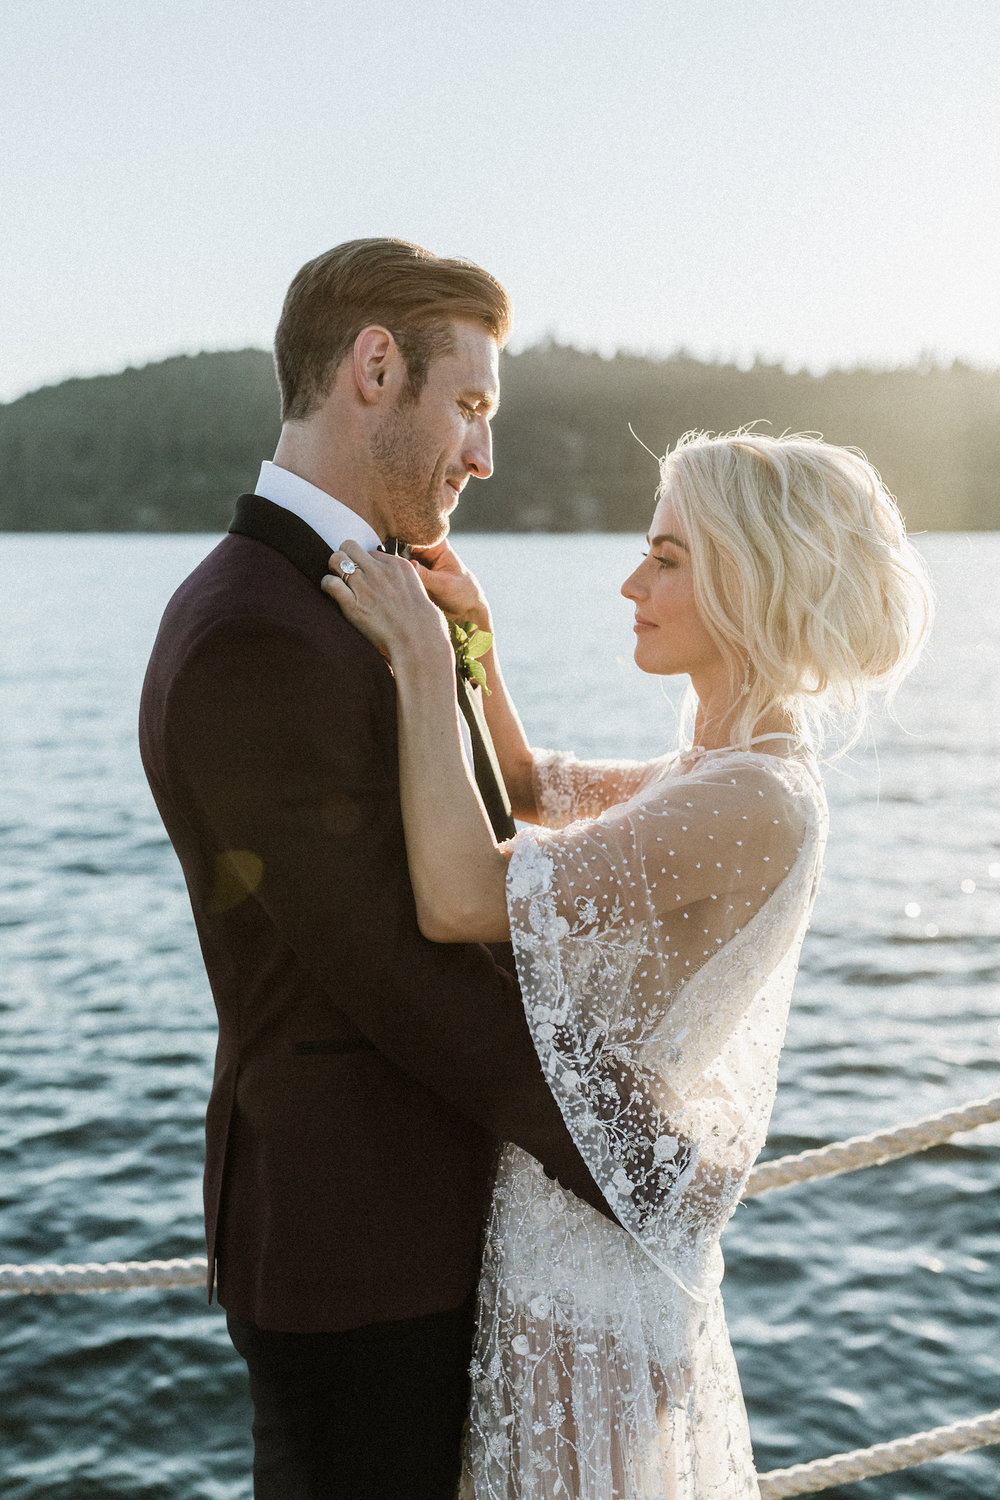 Julianne Hough and Brooks Laich Wedding - Wild Bloom Floral - Sarah Falugo Photography - Simply Troy Event Design 68.jpeg